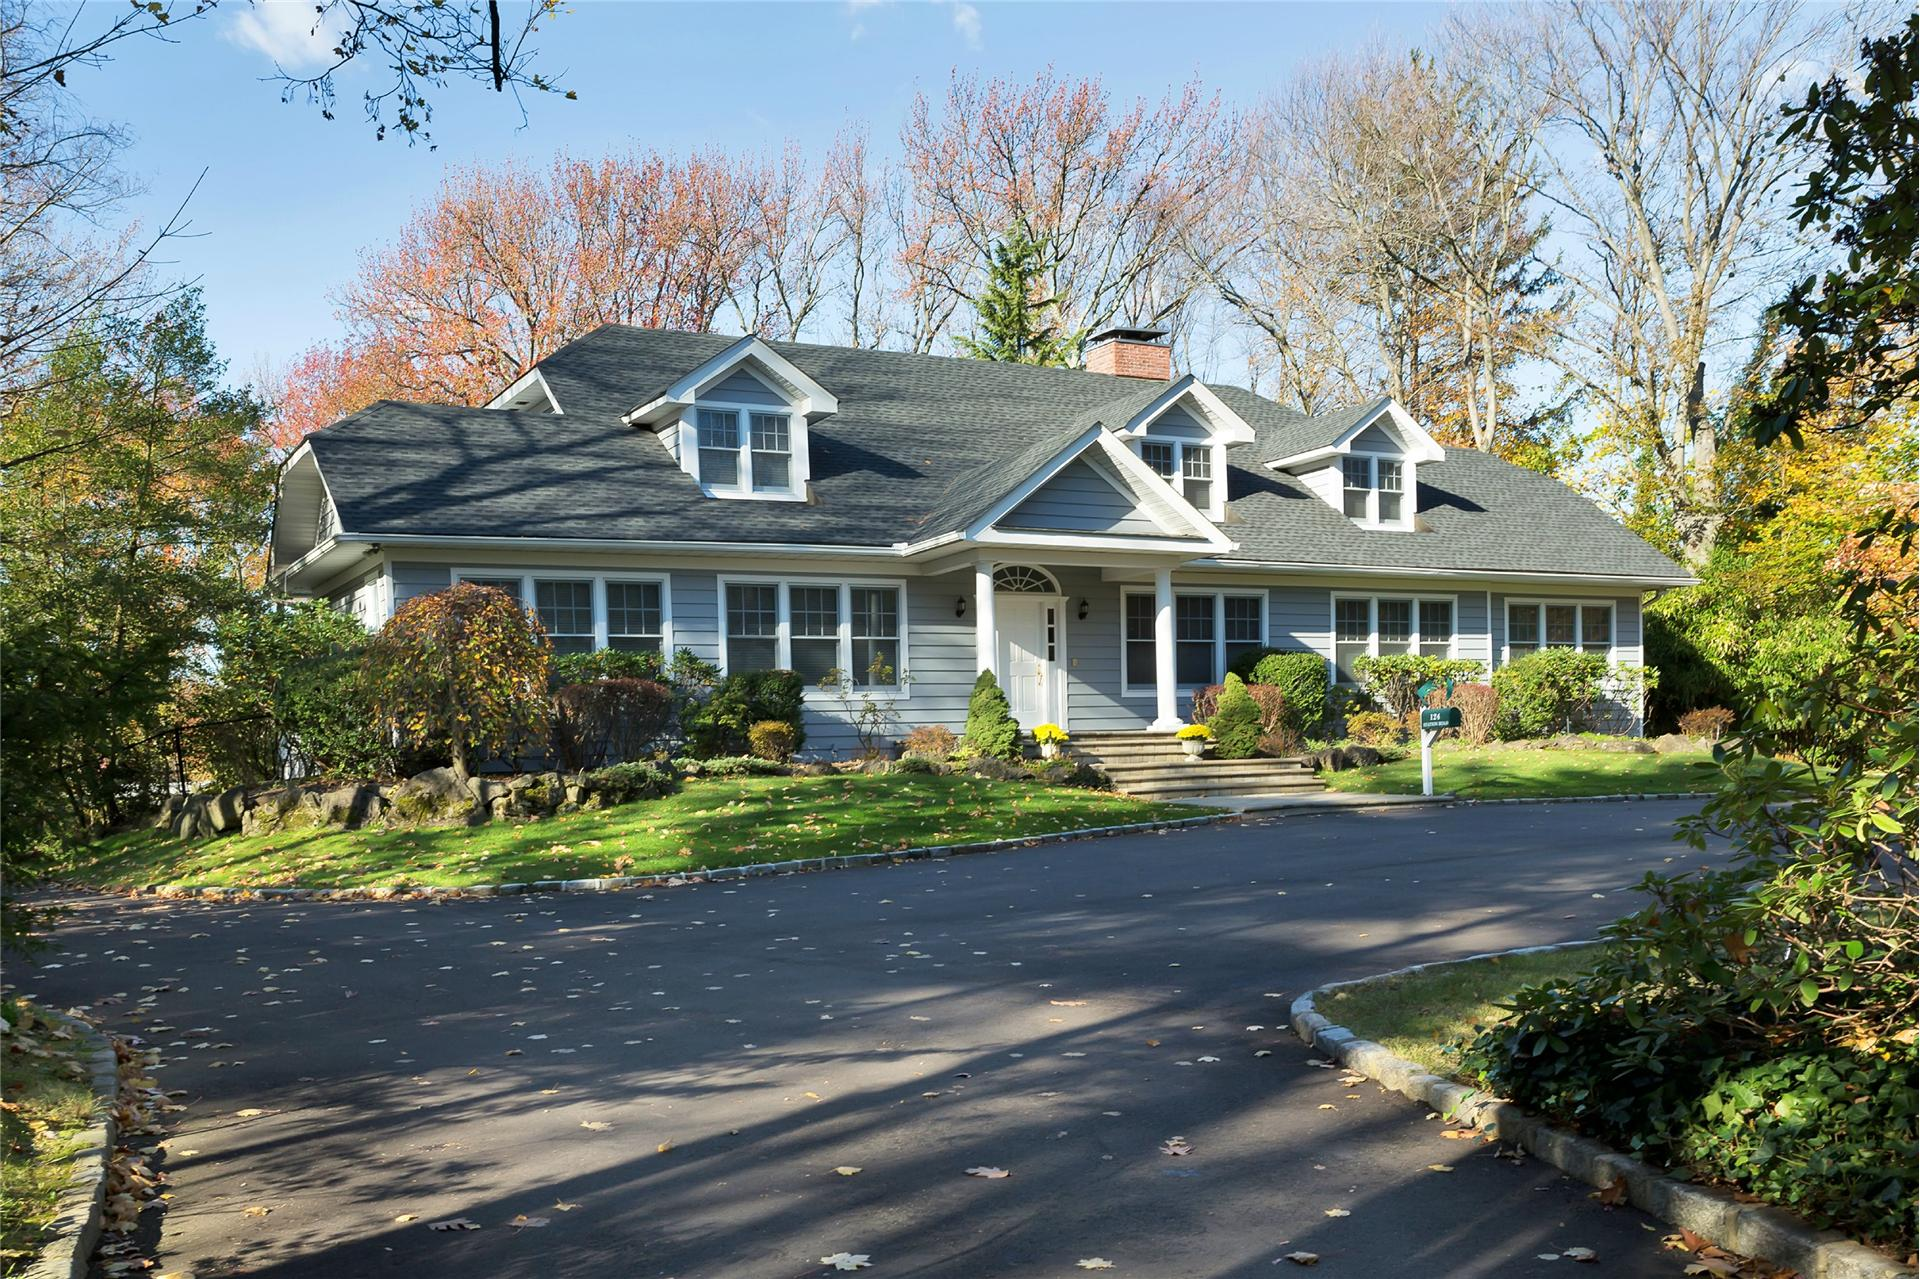 Single Family for Sale at 124 Station Rd Great Neck, New York 11023 United States